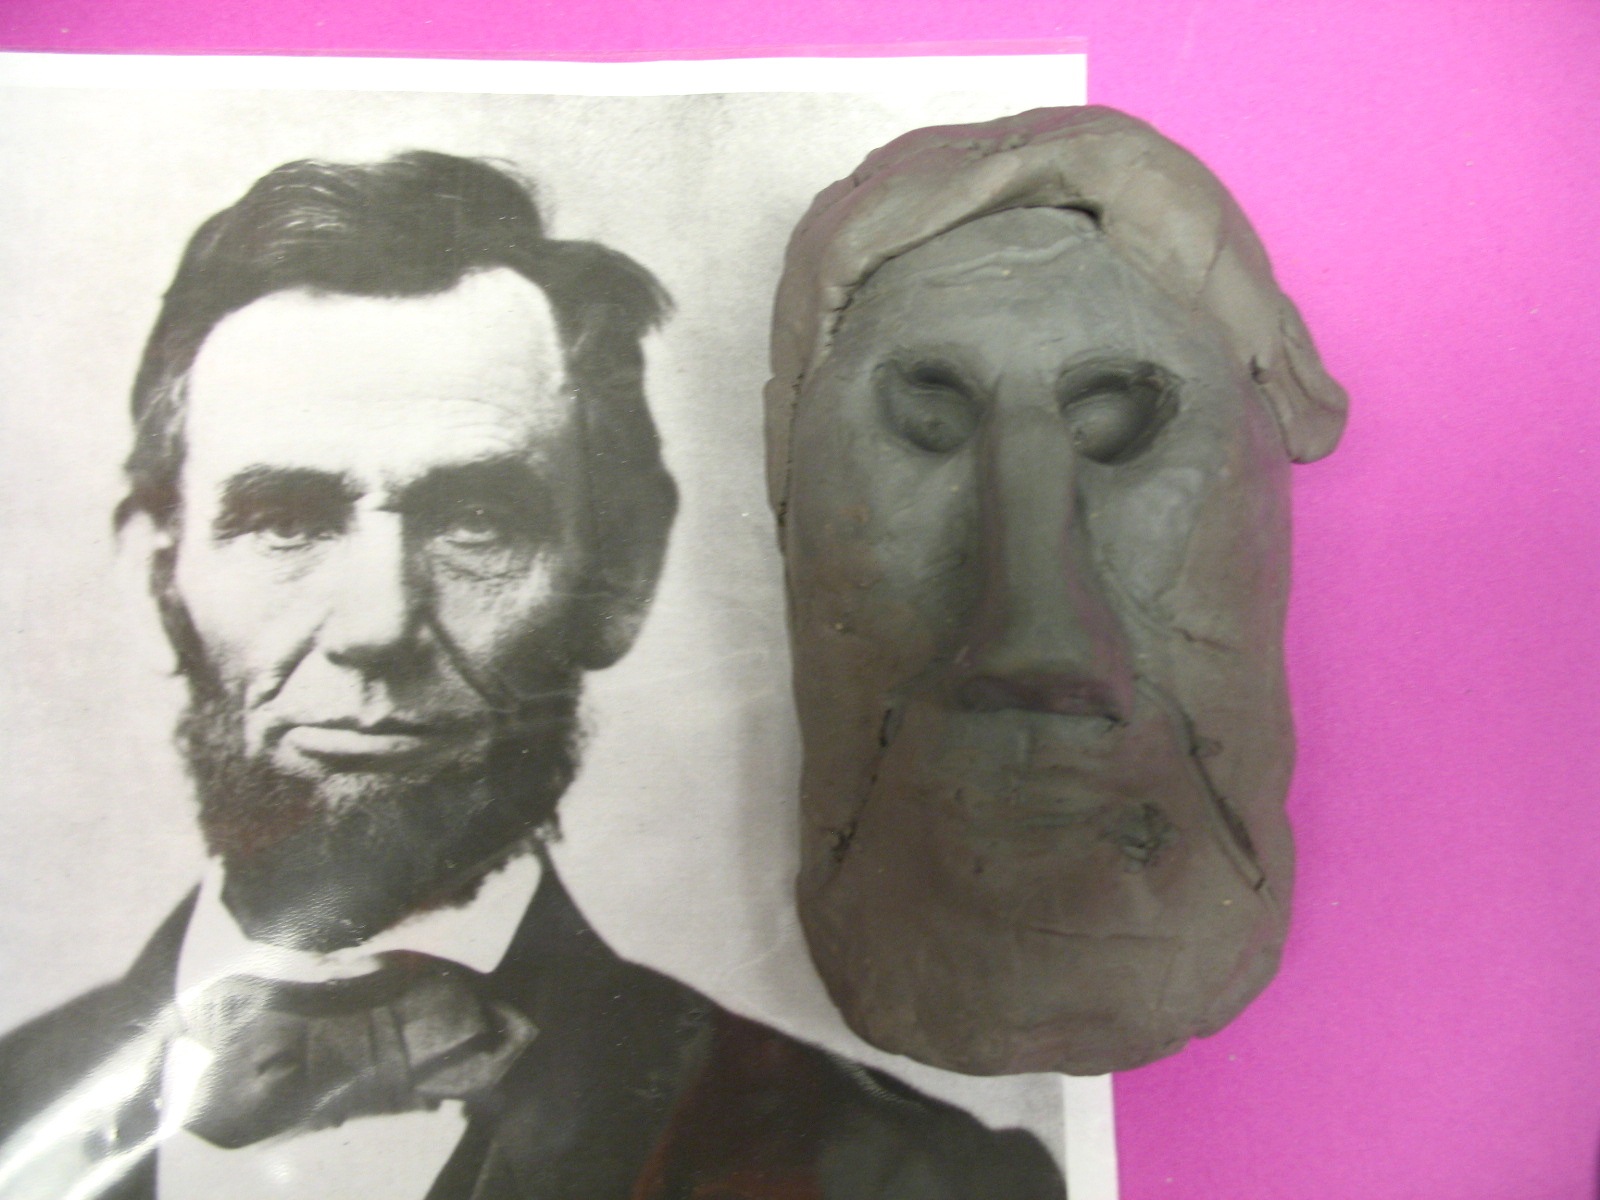 Face sculpture by a middle school student